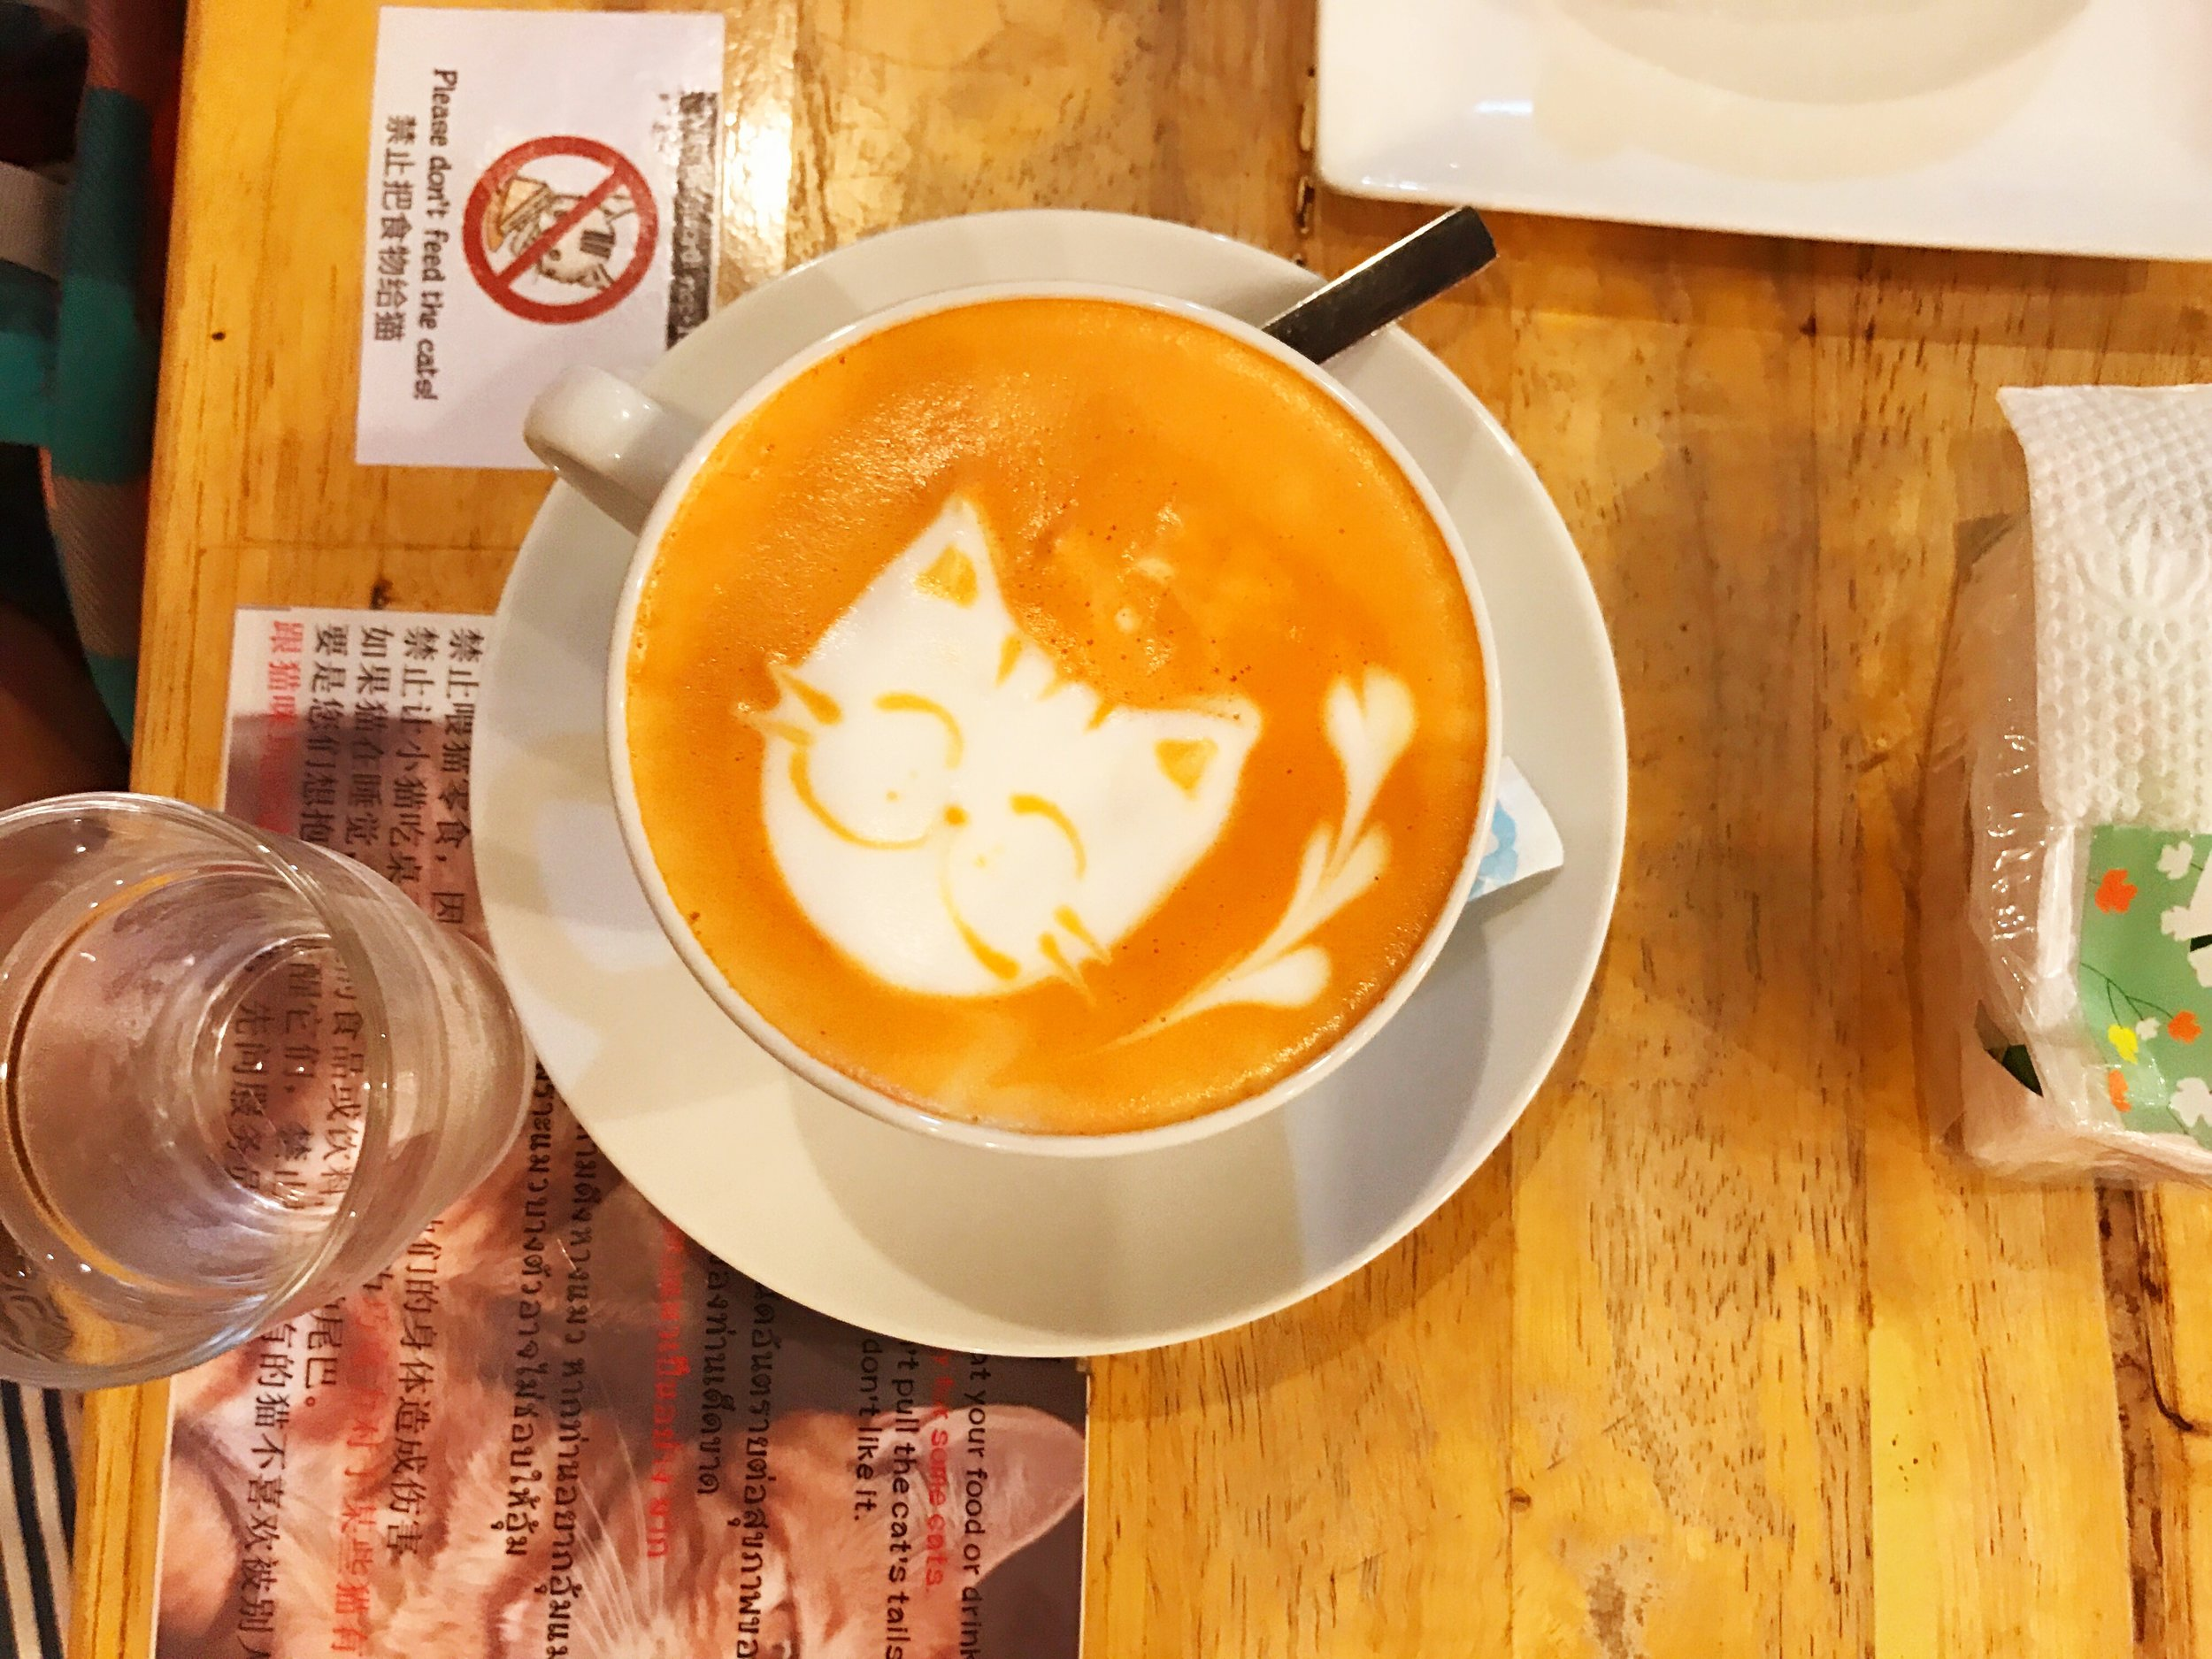 The latte art was enough to make us regret our decision to go with iced